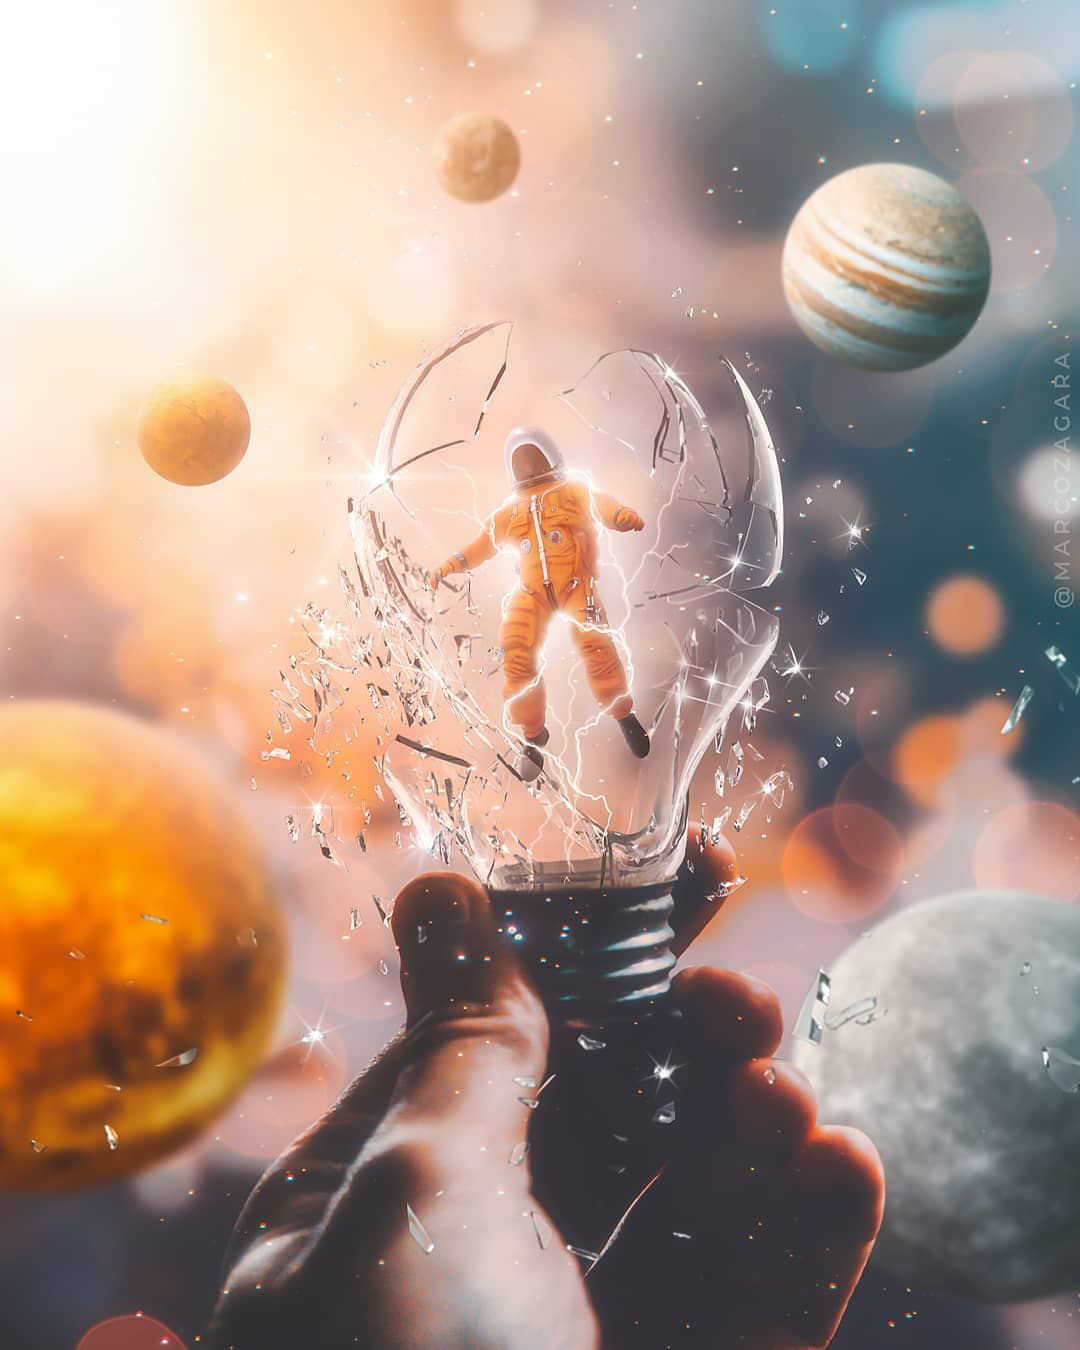 photo manipulation bulb by marco zagara